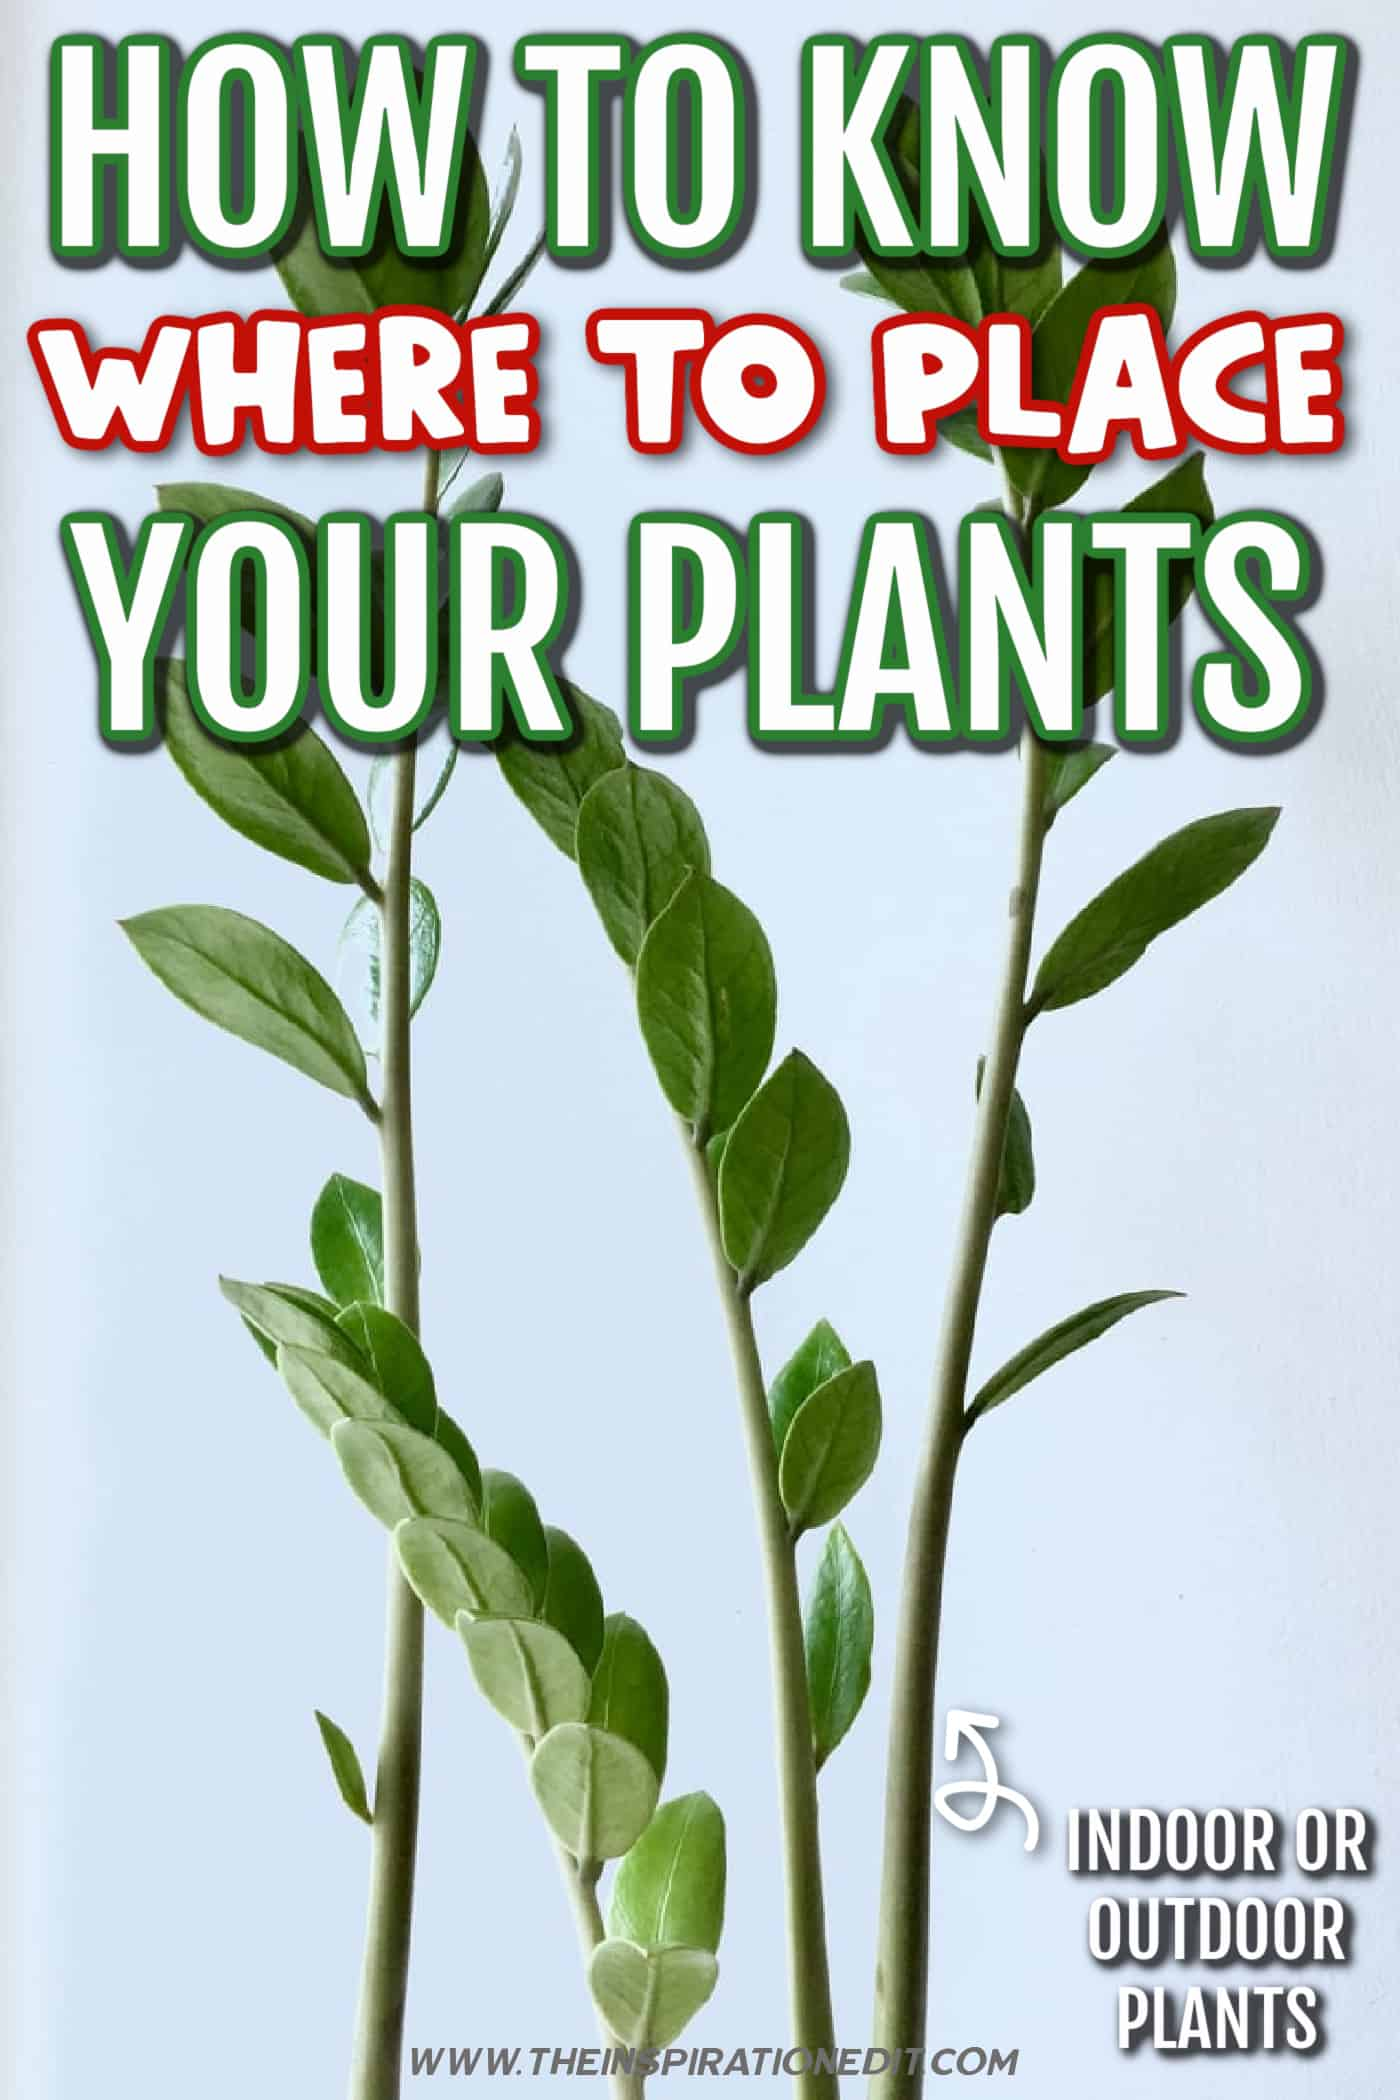 PLANTS WHERE TO PLACE THEM